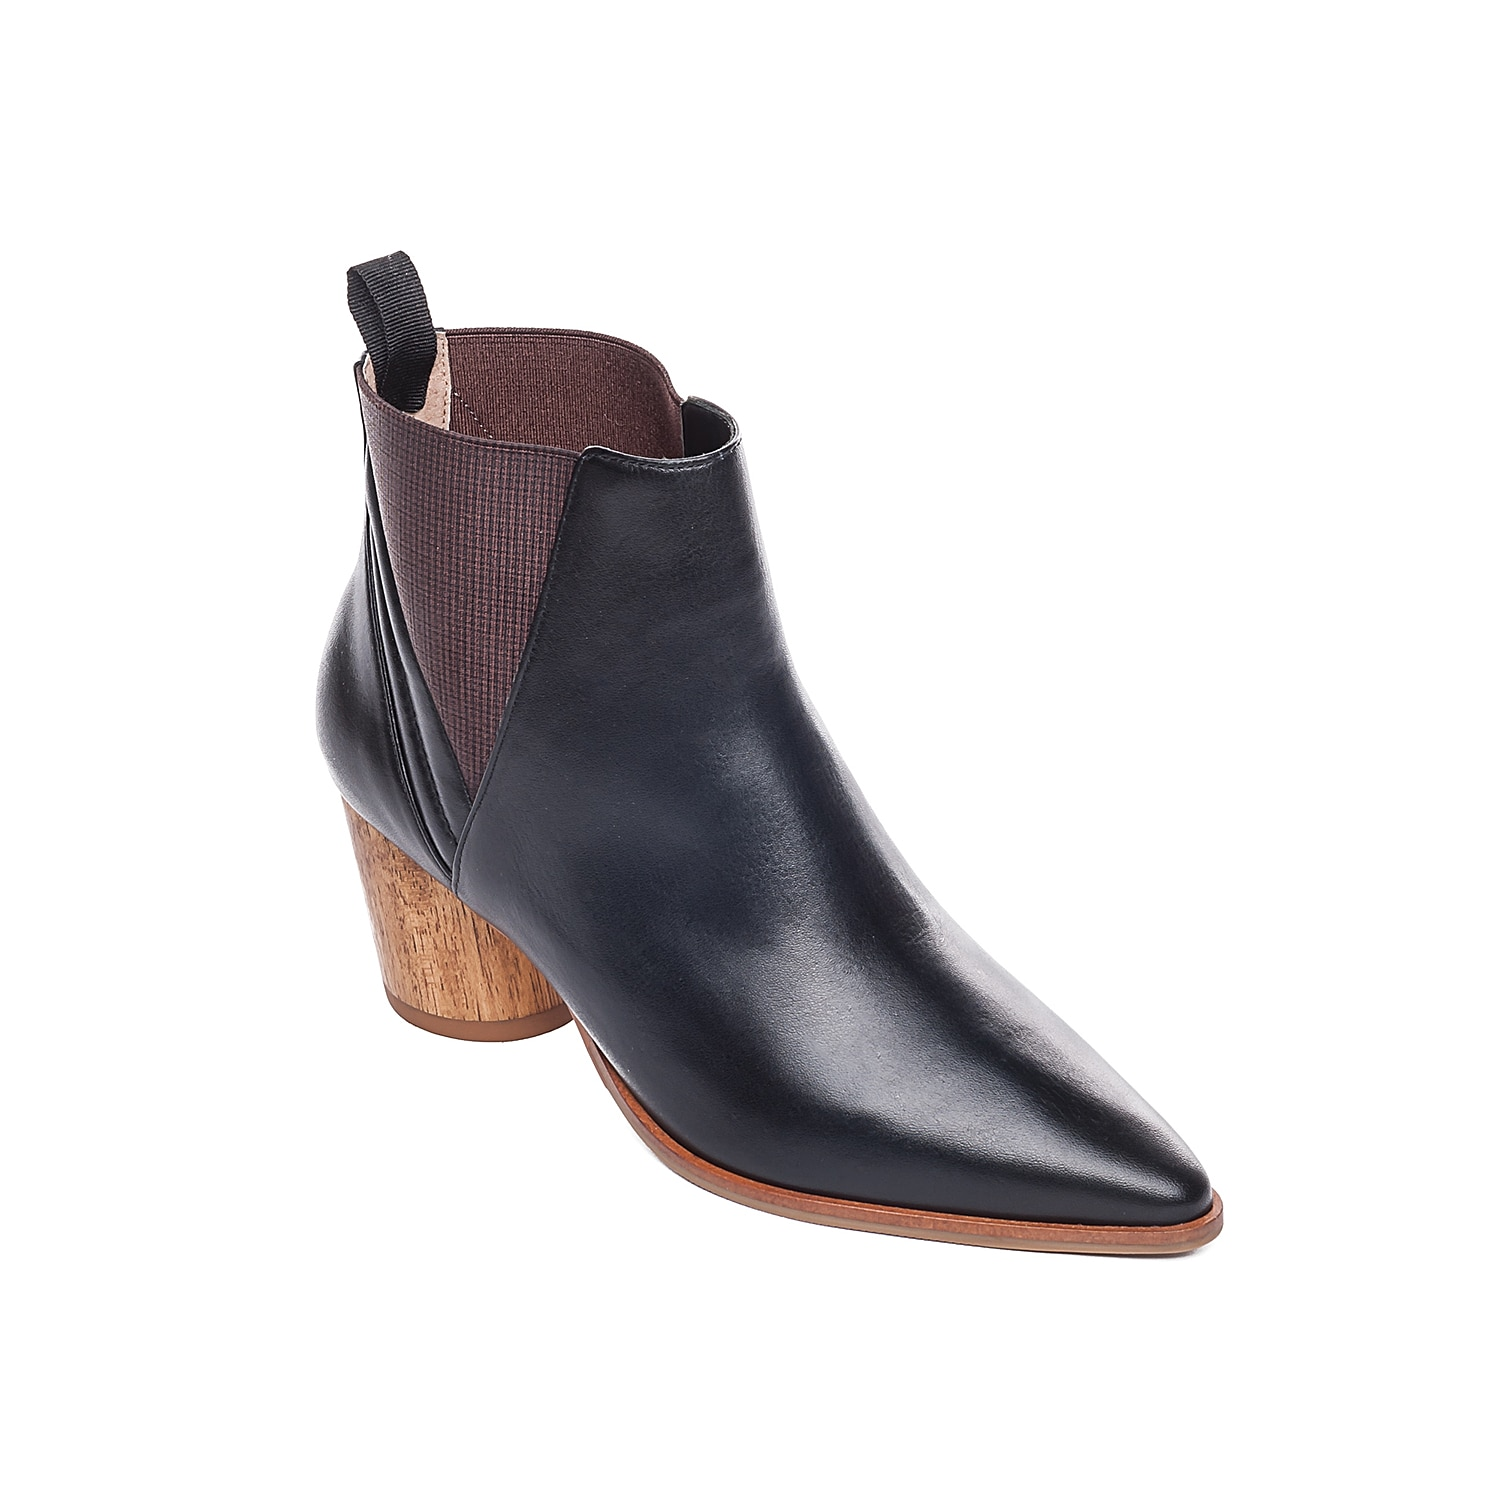 Become the cynosure of all eyes donning the Bernardo Ferris ankle boot. Sleek pointed toe, polished calf leather upper, antique elastic panels, padded leather sock and contrasting textured block heel define this graceful ankle boot.Click here for Boot Measuring Guide.